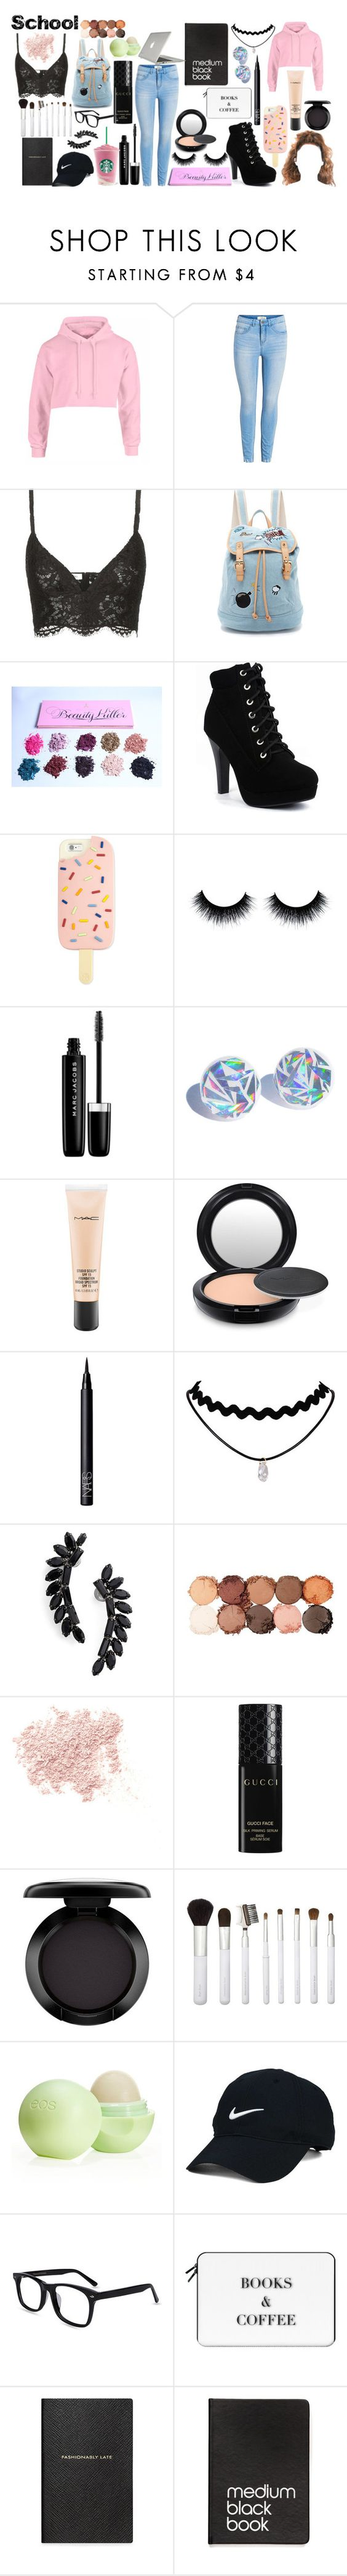 """""""school"""" by jaidyn-909 ❤ liked on Polyvore featuring Valentino, Paul & Joe Sister, Tory Burch, Marc Jacobs, MAC Cosmetics, NARS Cosmetics, Cristabelle, NYX, Bare Escentuals and Gucci"""